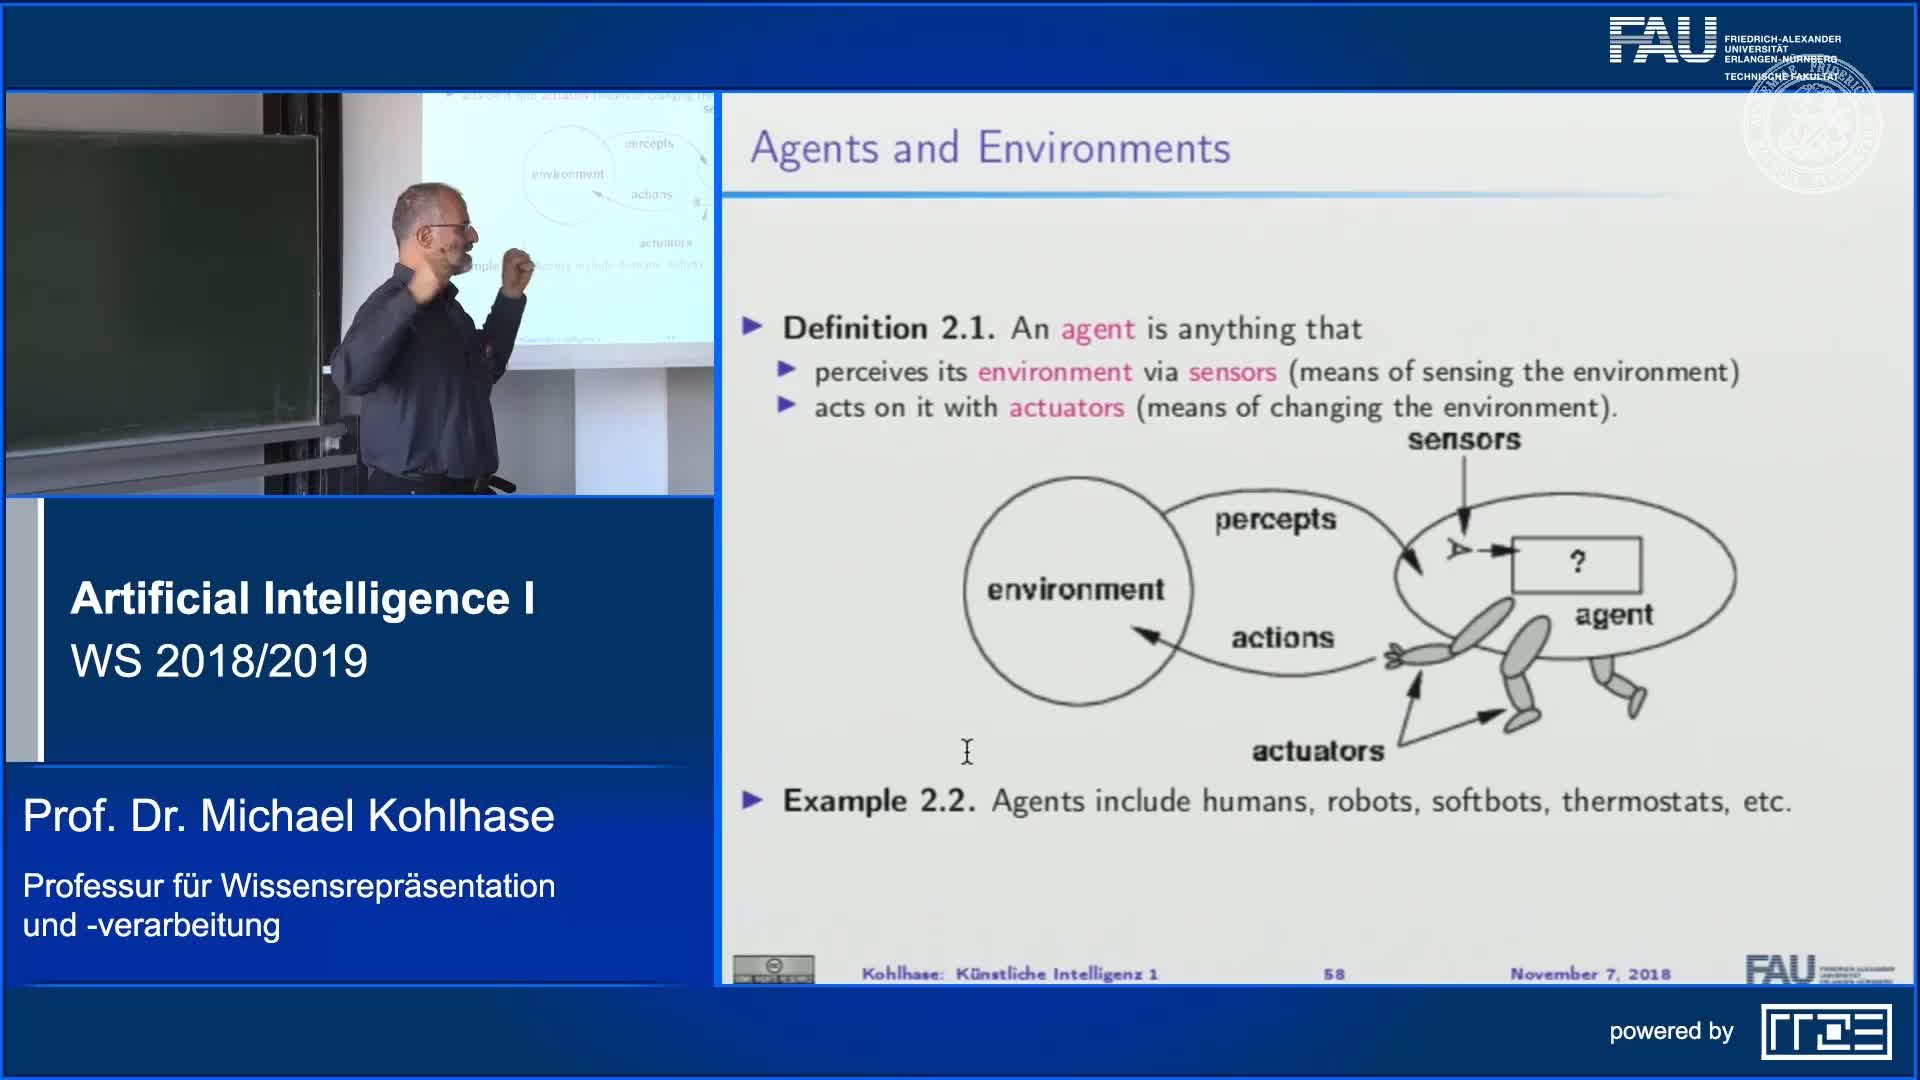 Recap: Agents and Environments as a Framework for AI preview image